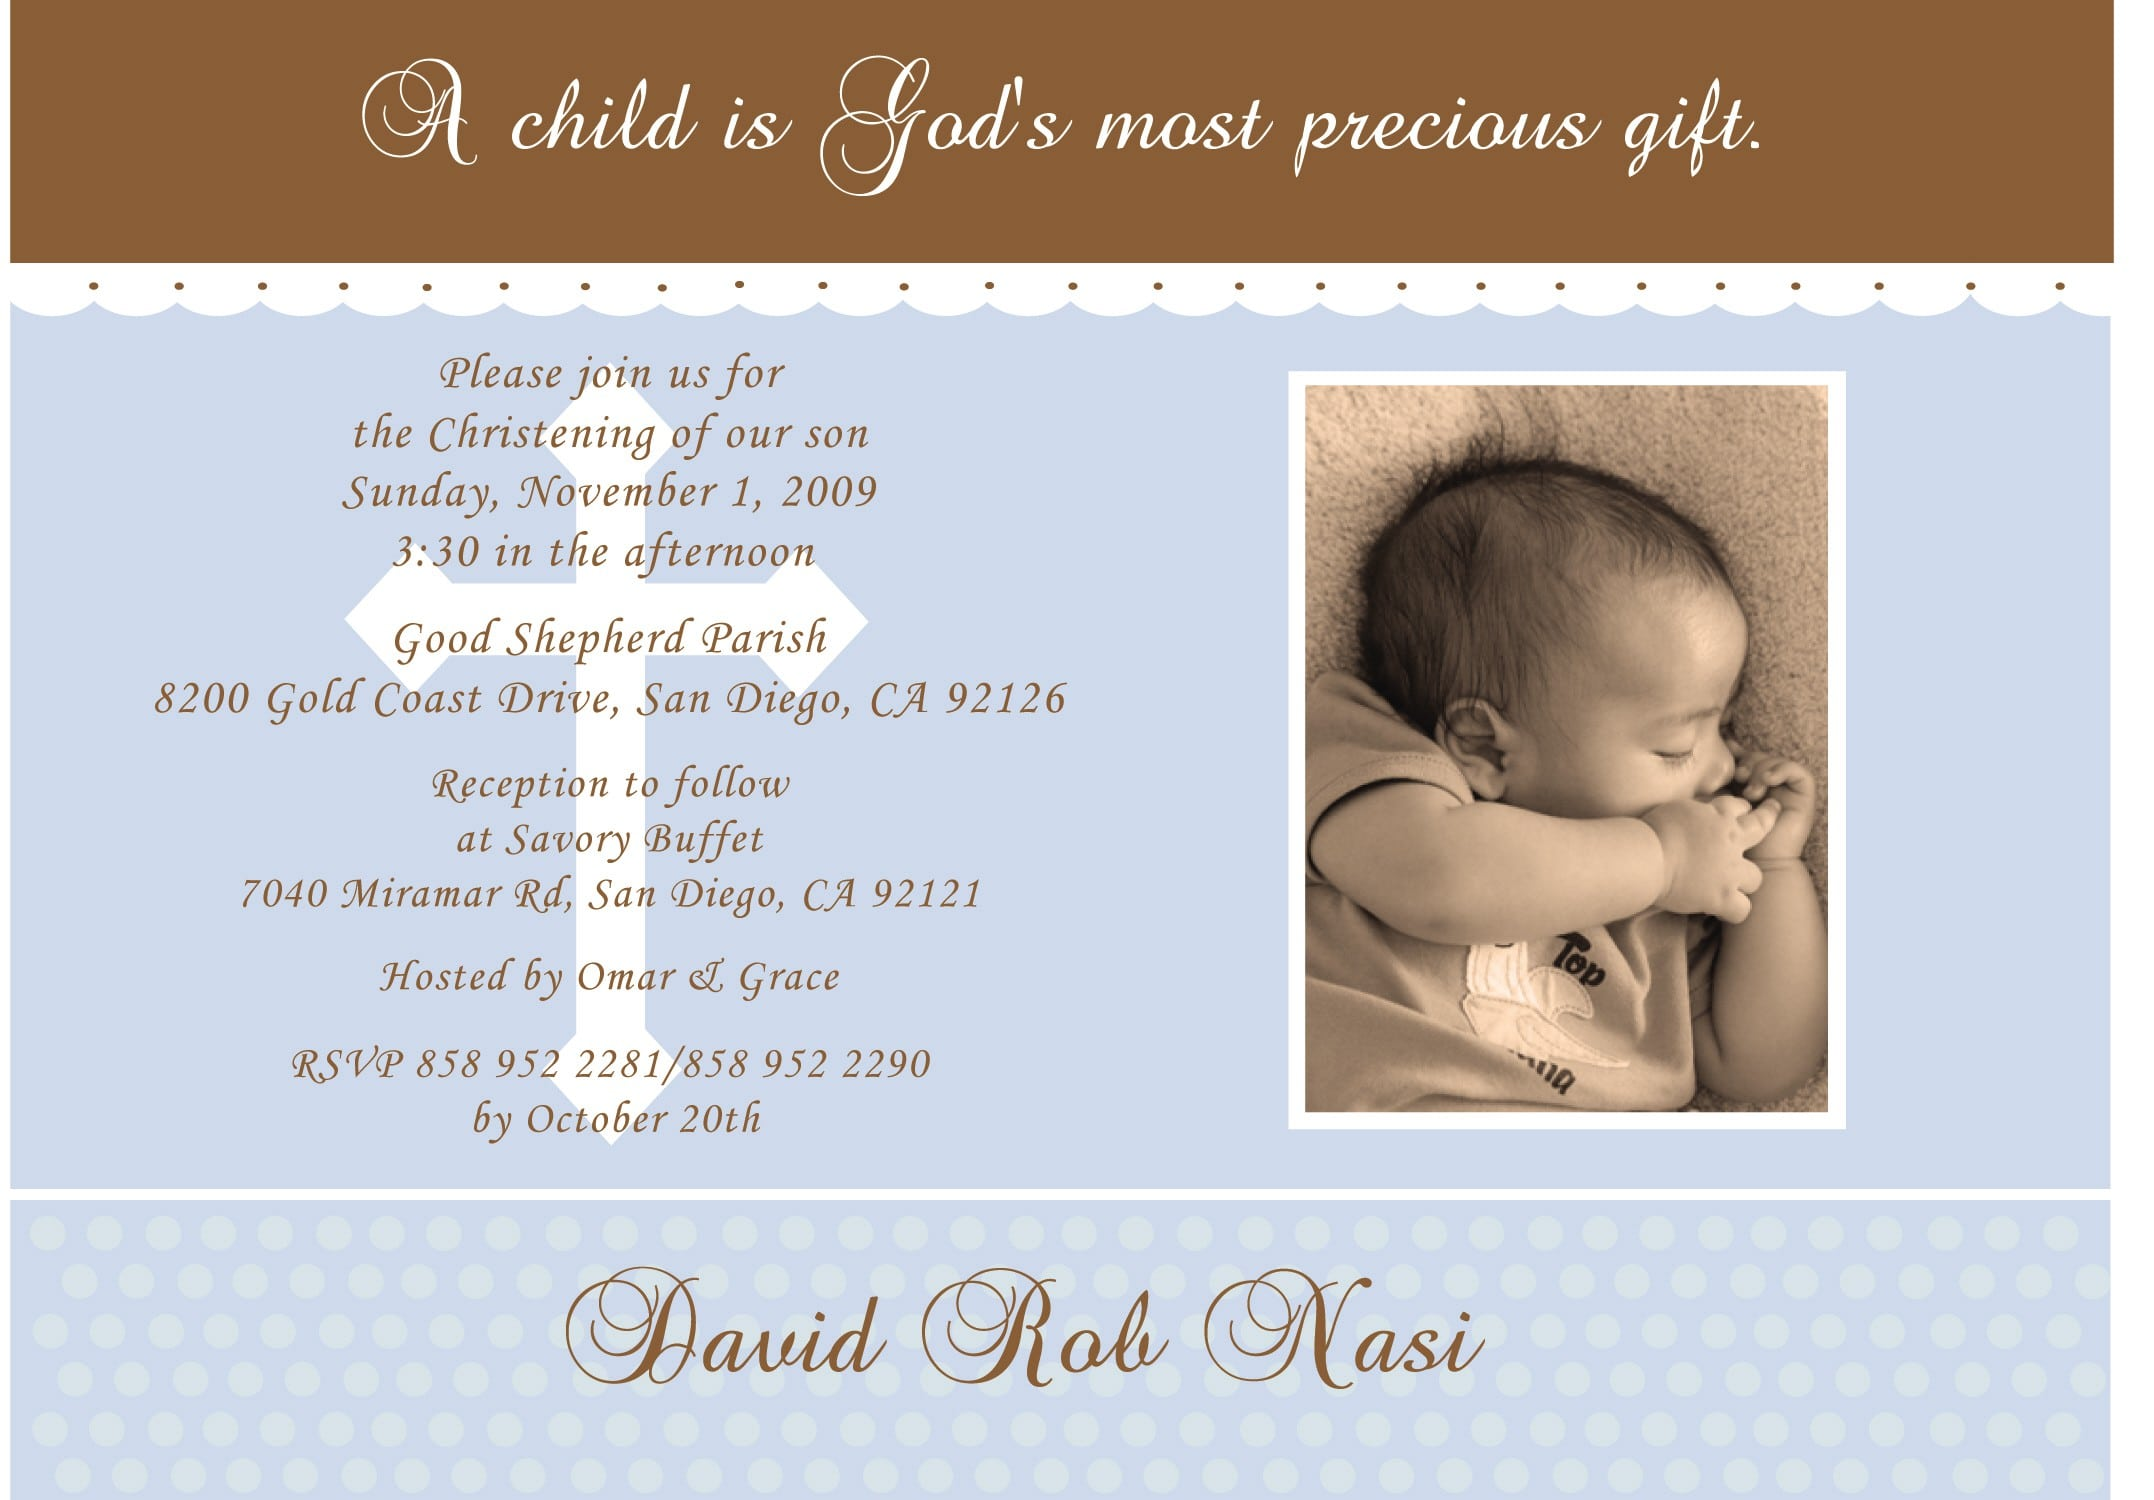 Baptismal Invitation Layout Templates 2